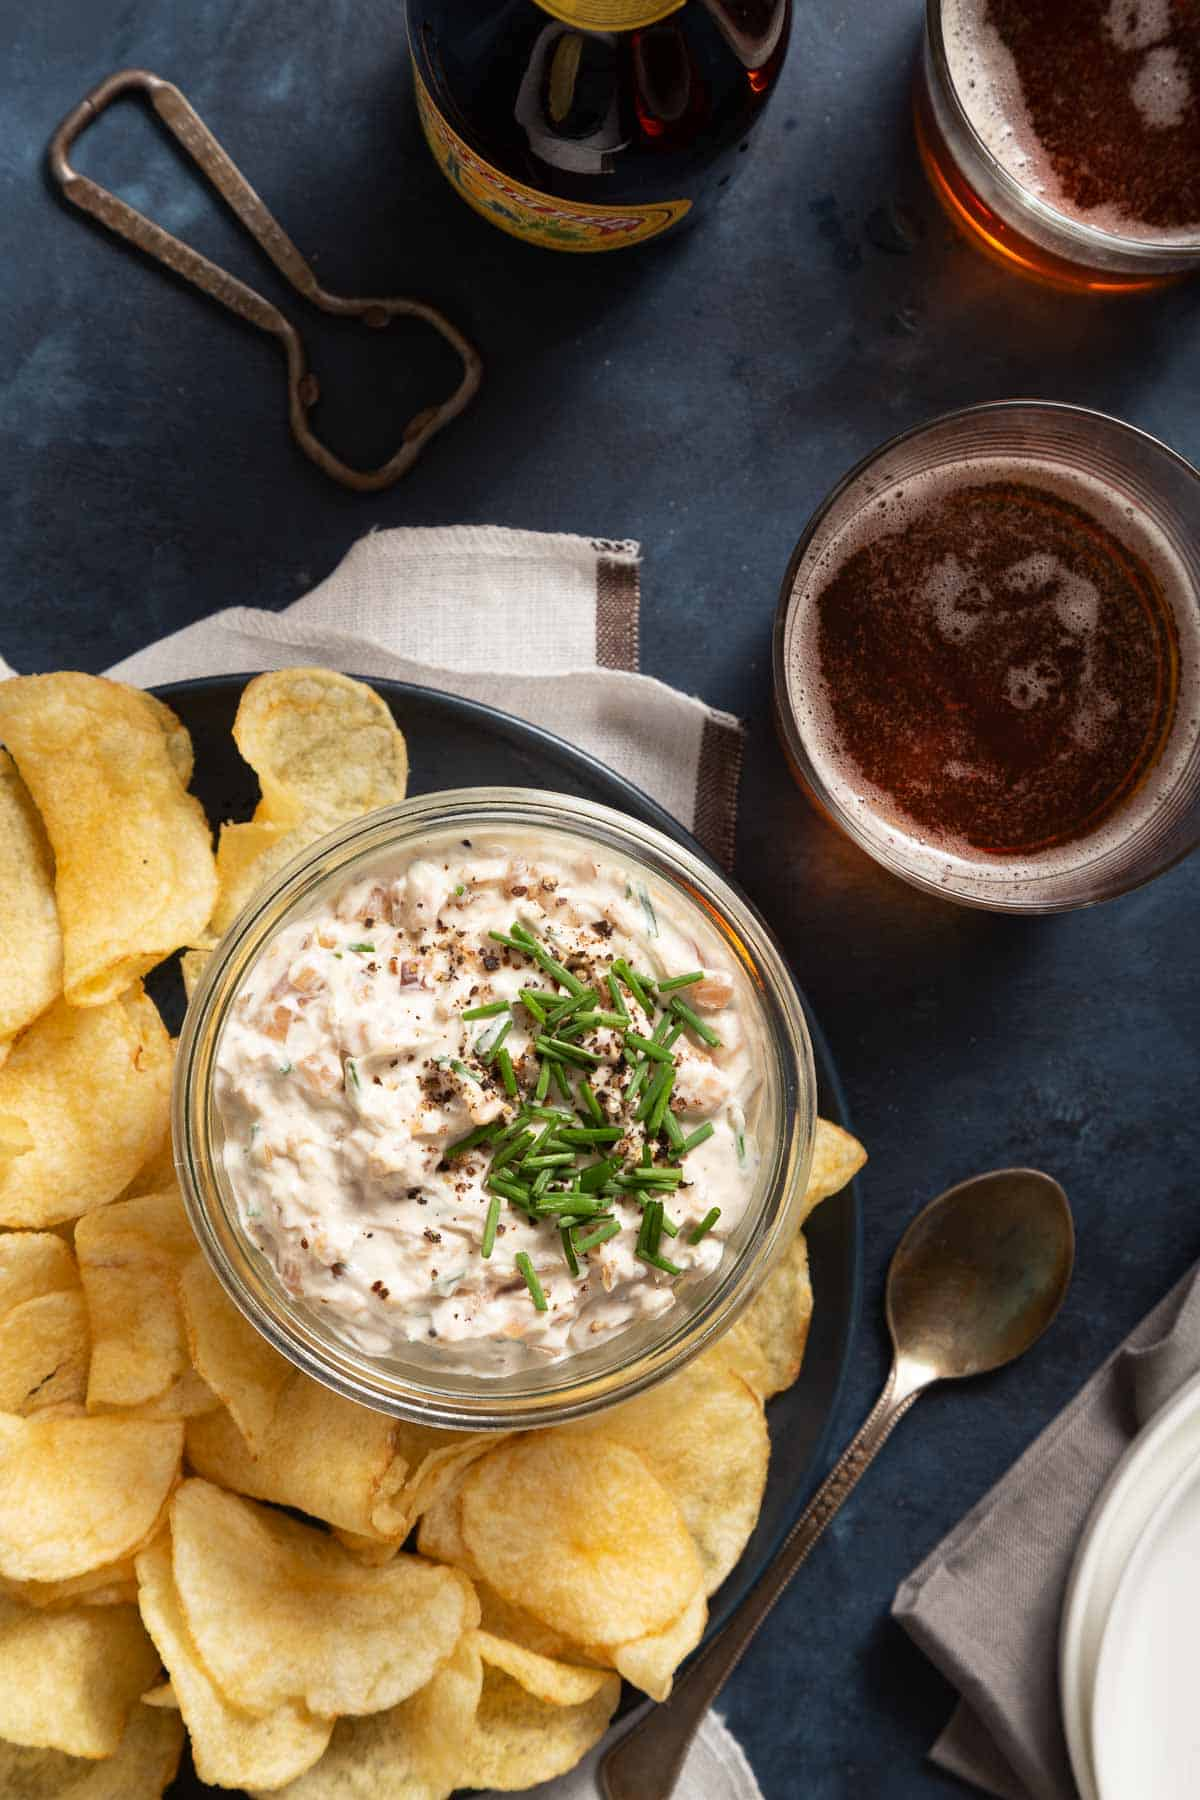 Glass jar full of dip next to a plate of chips and glasses of dark beer